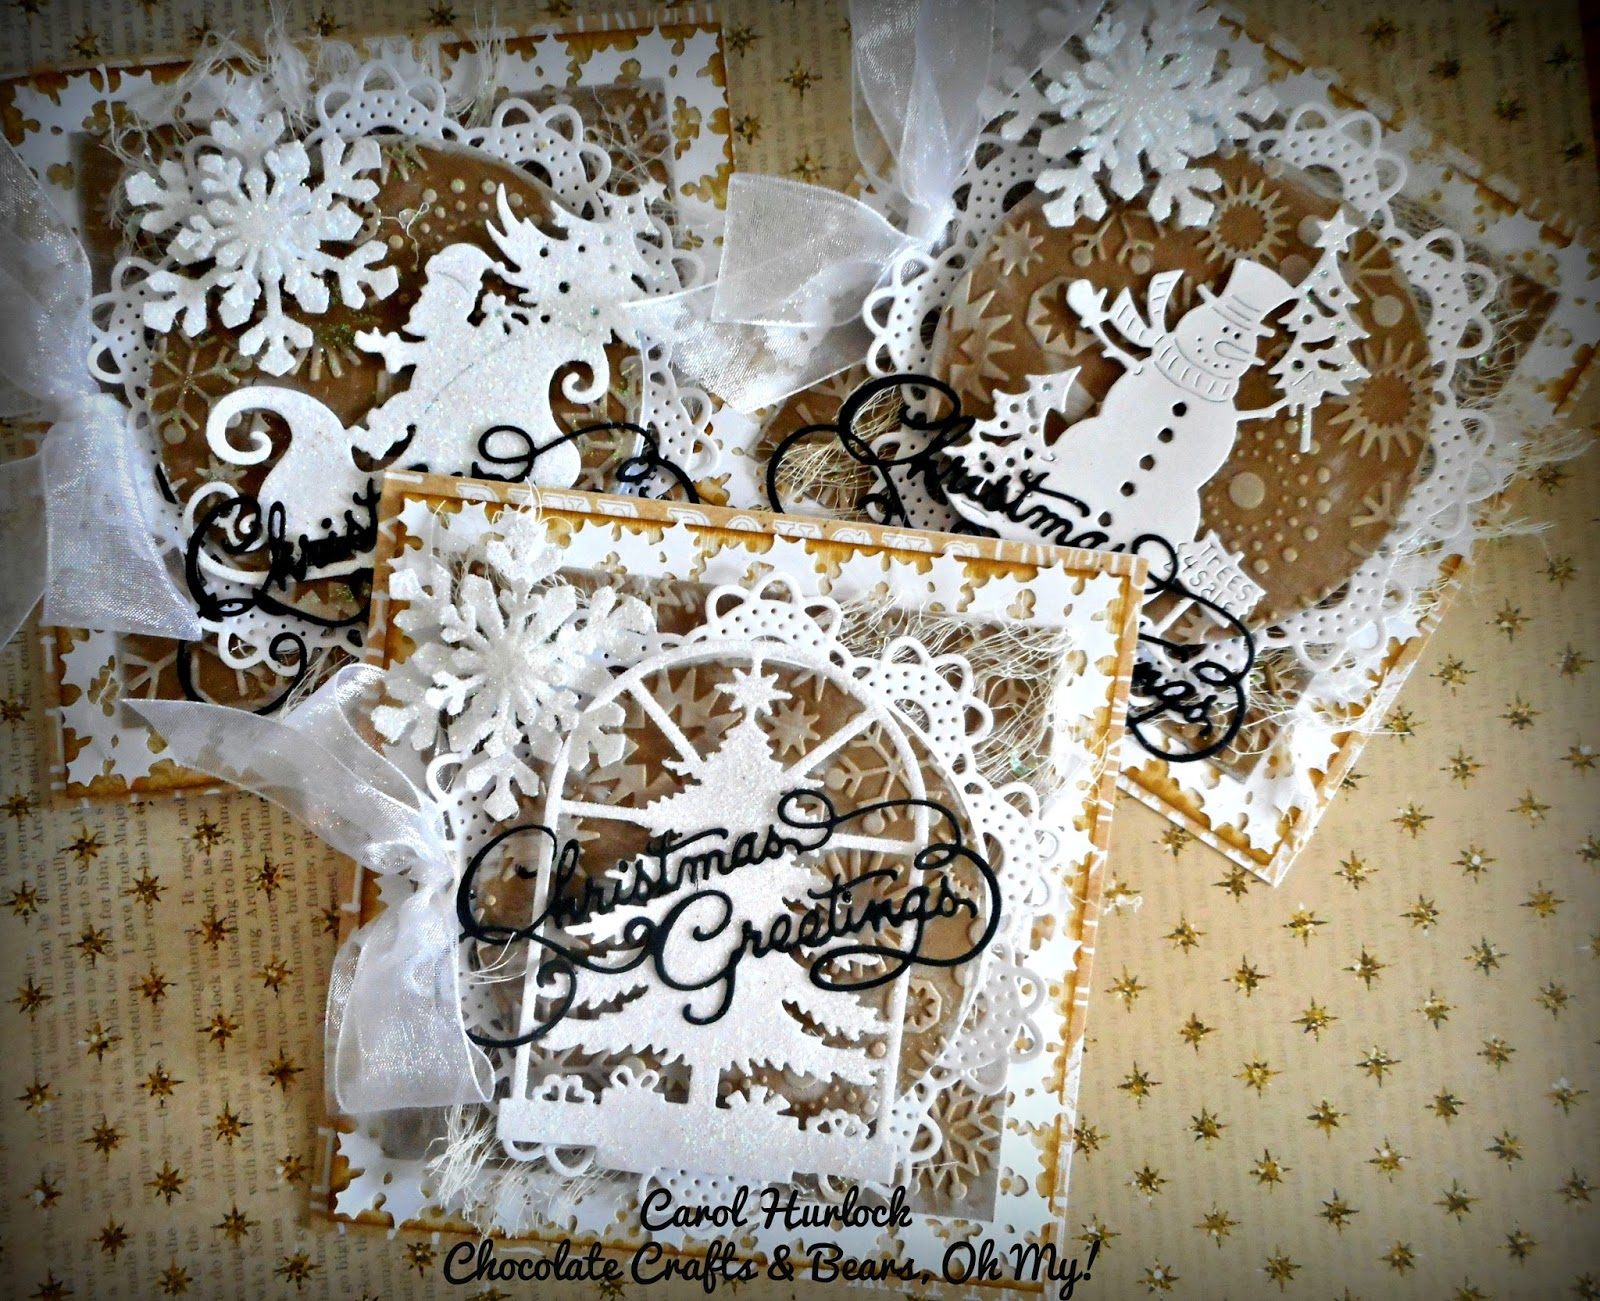 Chocolate Crafts and Bears, Oh My: CottageCutz Shabby Chic ...